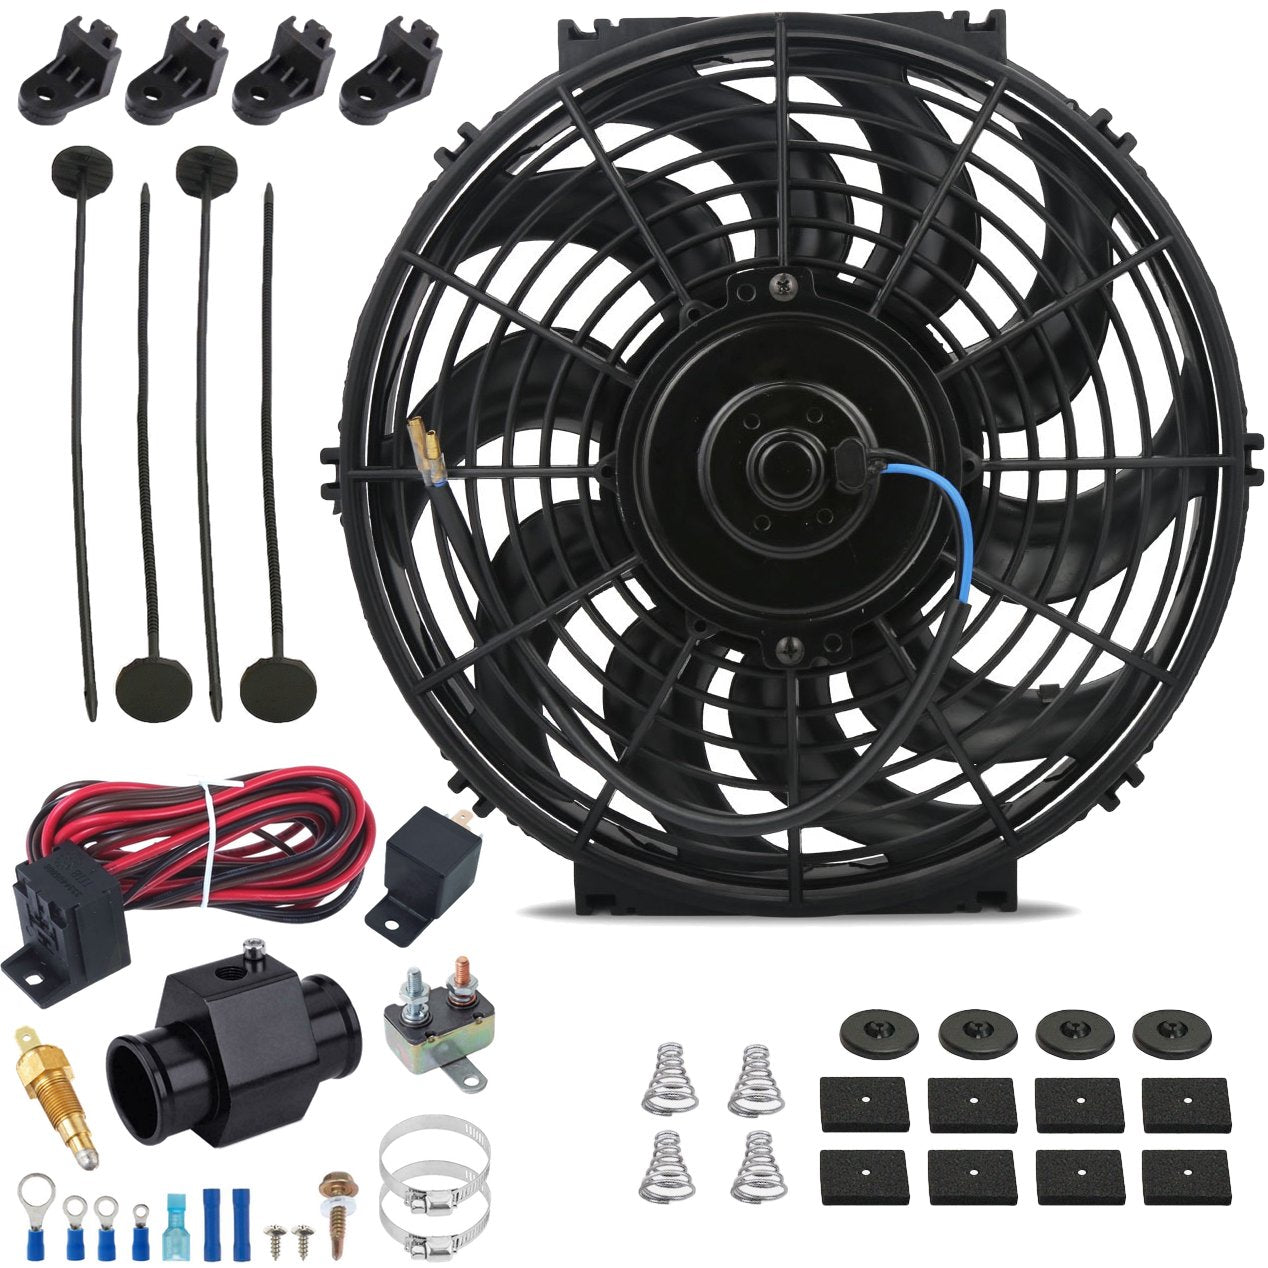 "12"" Inch 120w Electric Cooling Fans Radiator Hose In-Line Ground Thermostat Temp Switch Wiring Kit-Single Electric Fans-American Volt-26mm-140'F On - 125'F Off-American Volt"